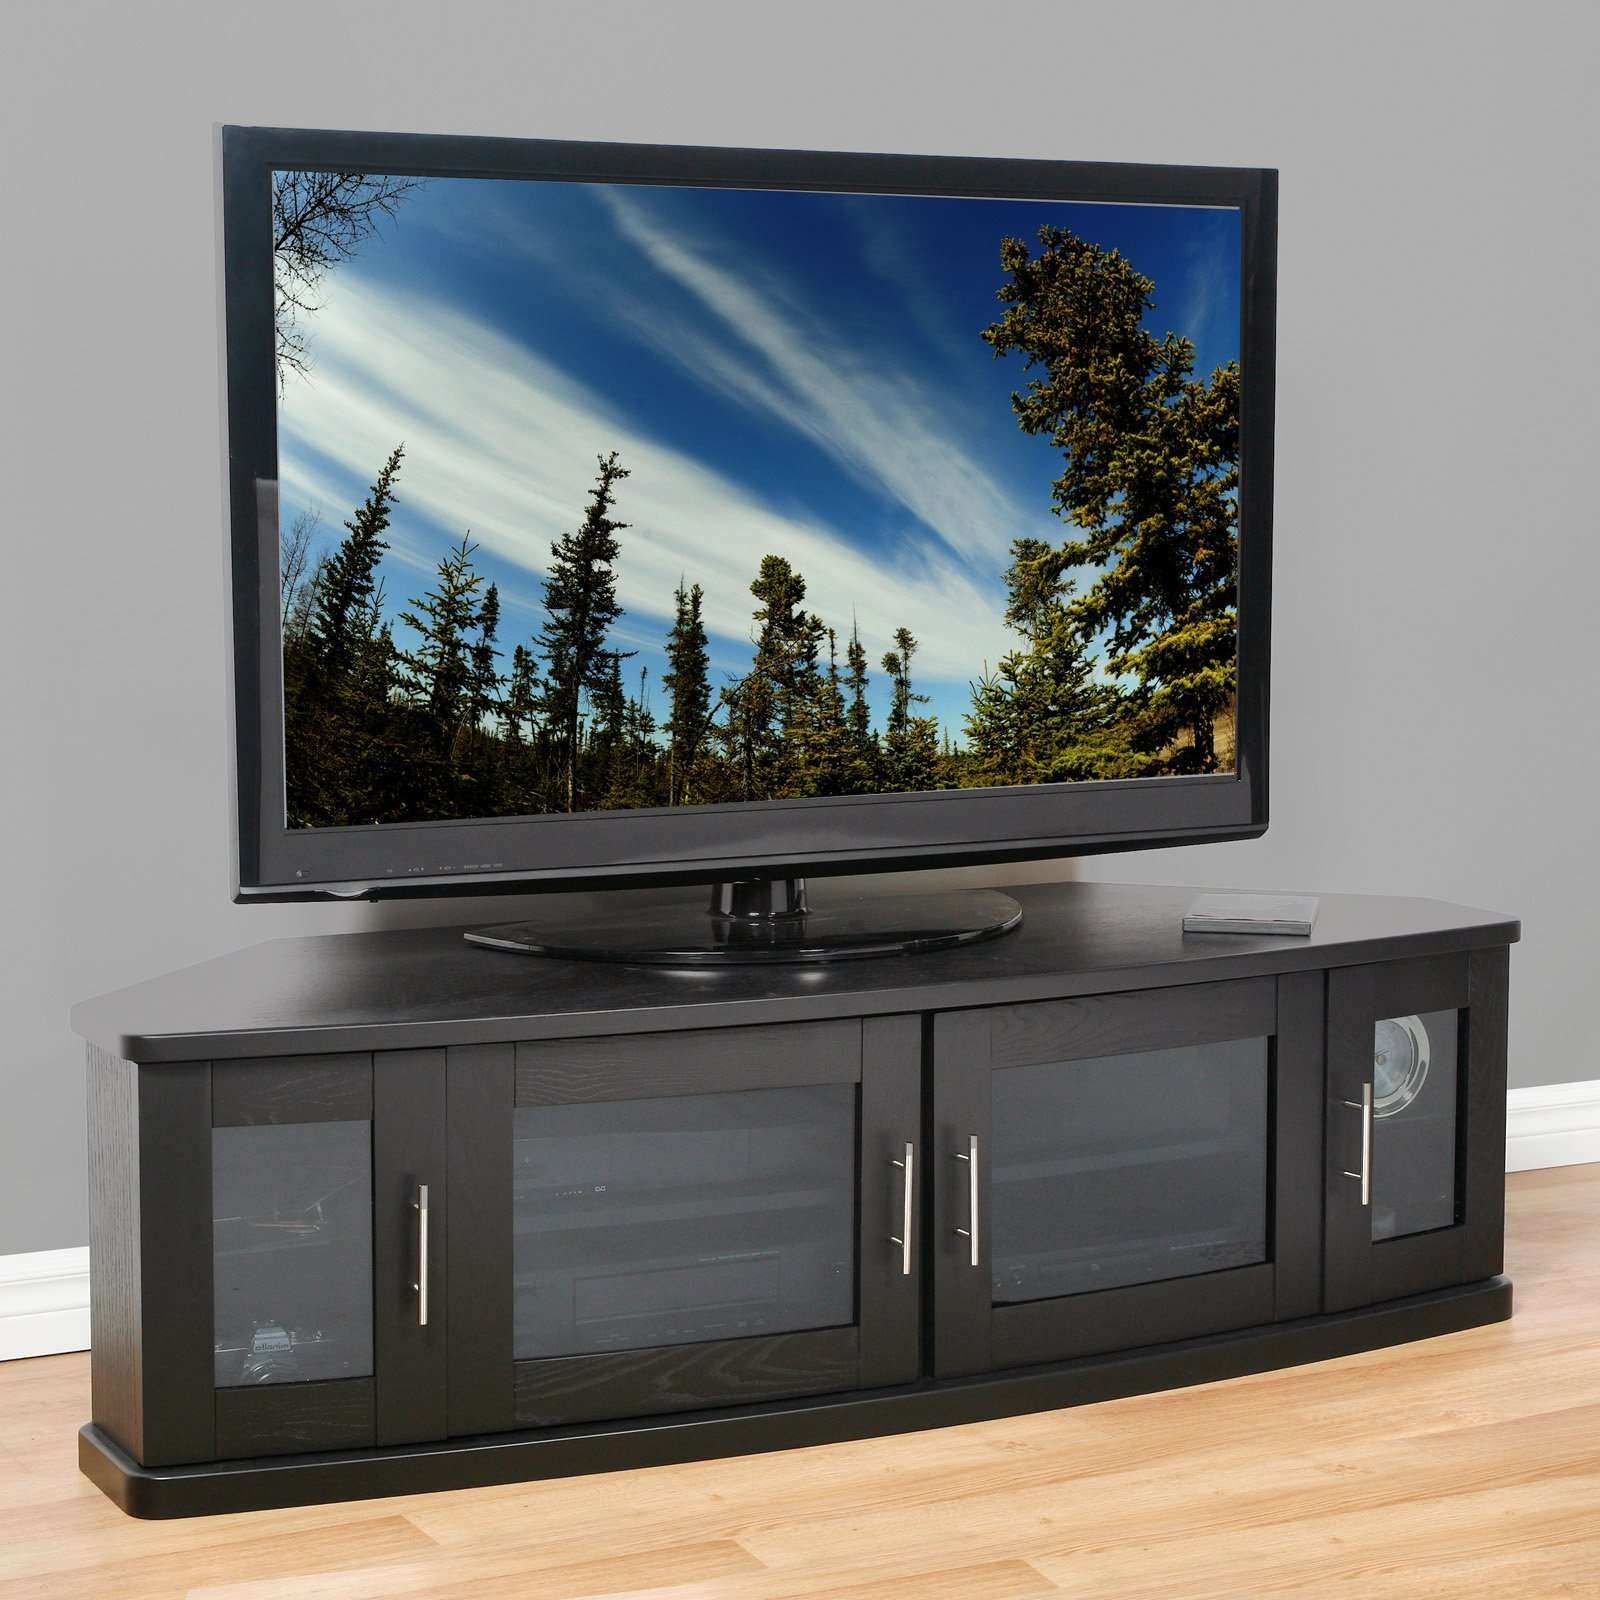 Plateau Newport 62 Inch Corner Tv Stand In Black – Walmart In Black Corner Tv Cabinets With Glass Doors (View 2 of 20)